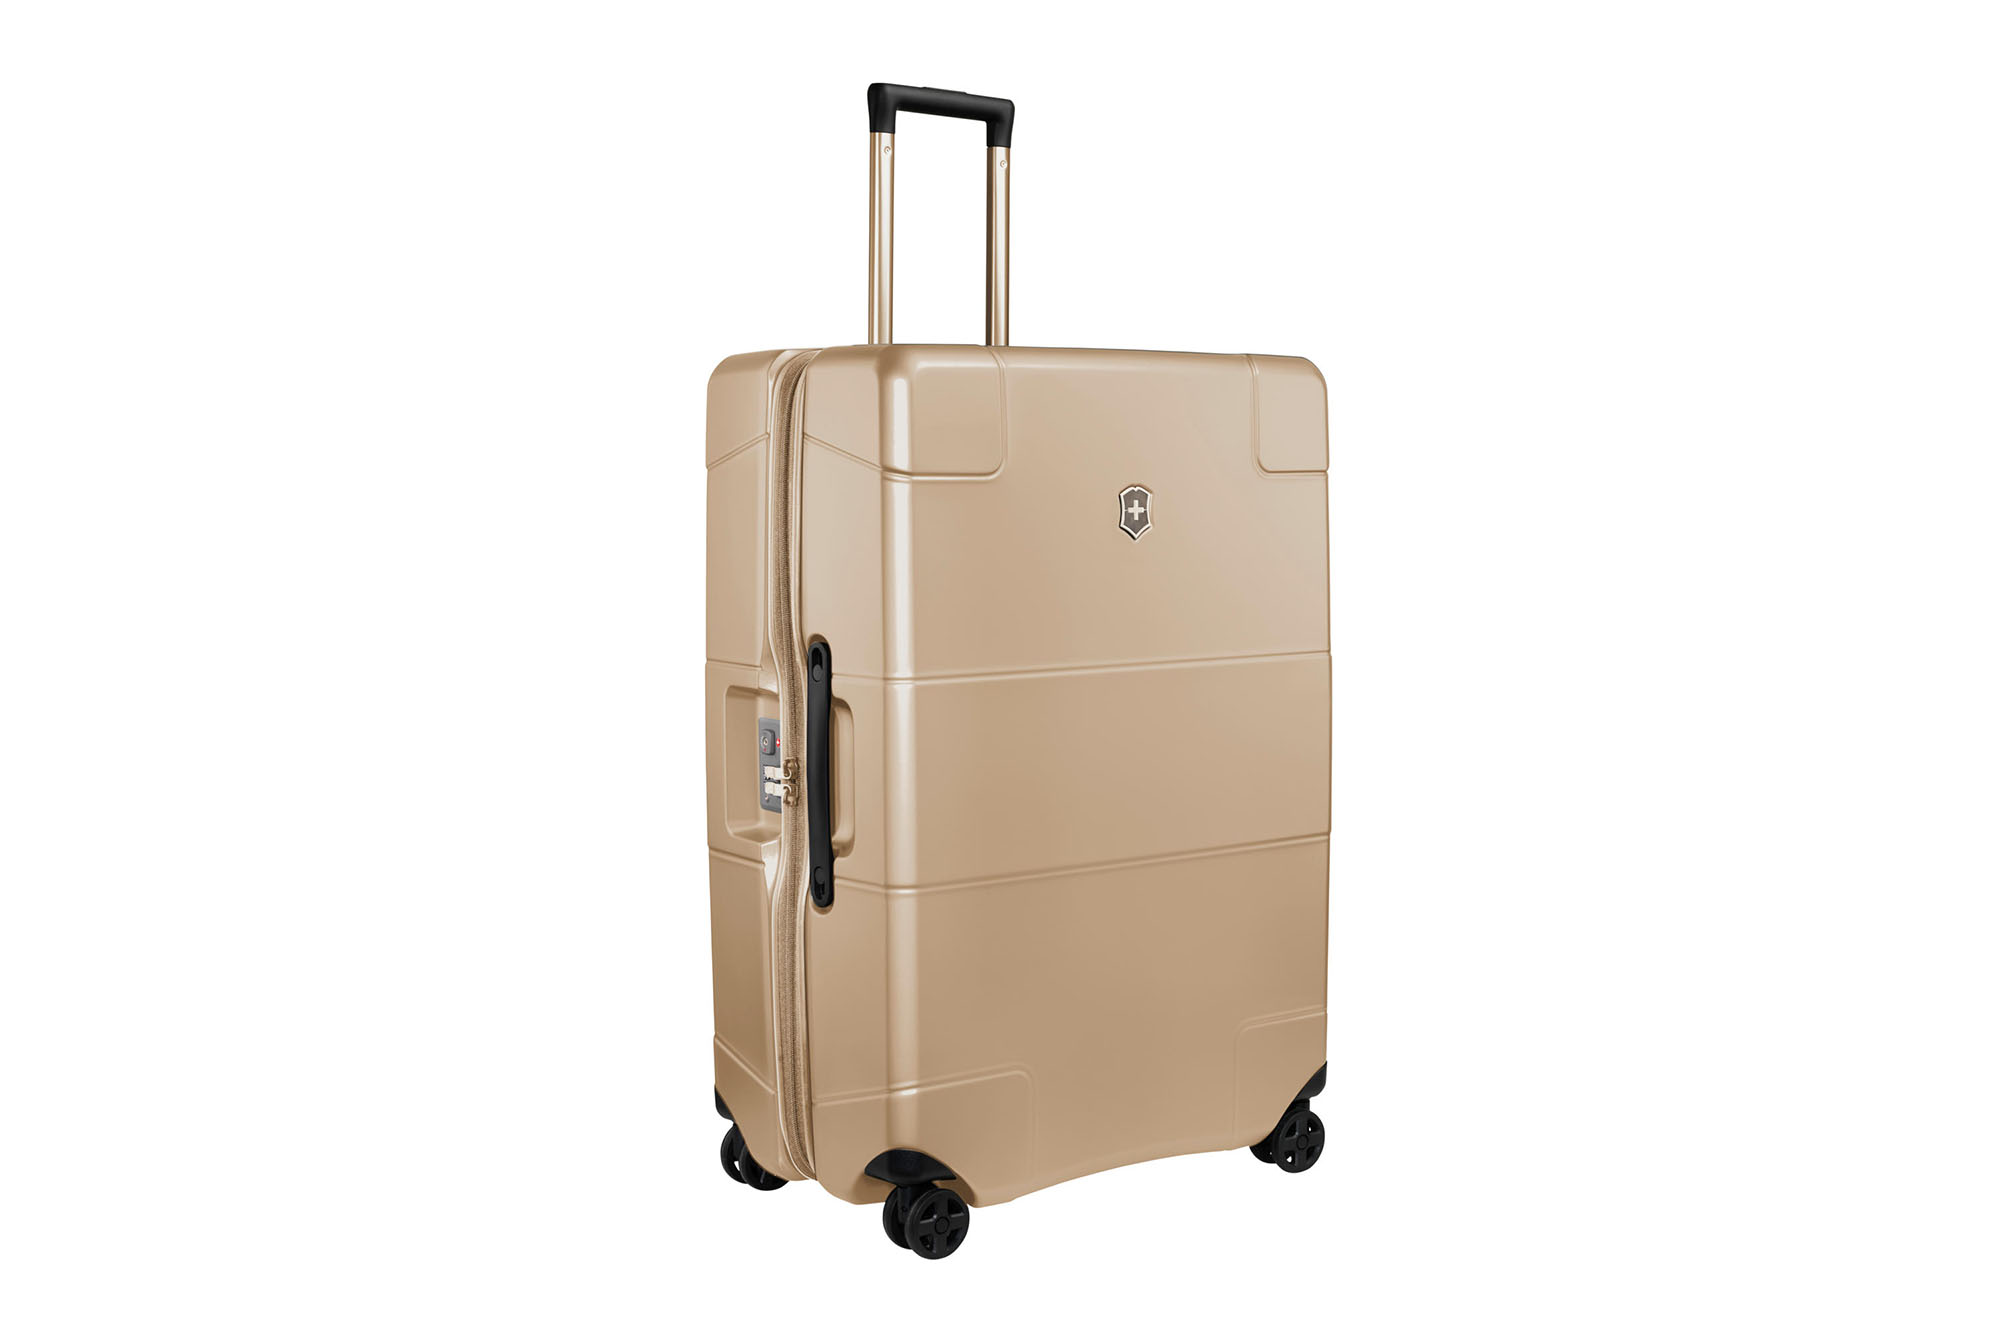 BEST FULL-SIZE SUITCASE: Victorinox Lexicon Hardside